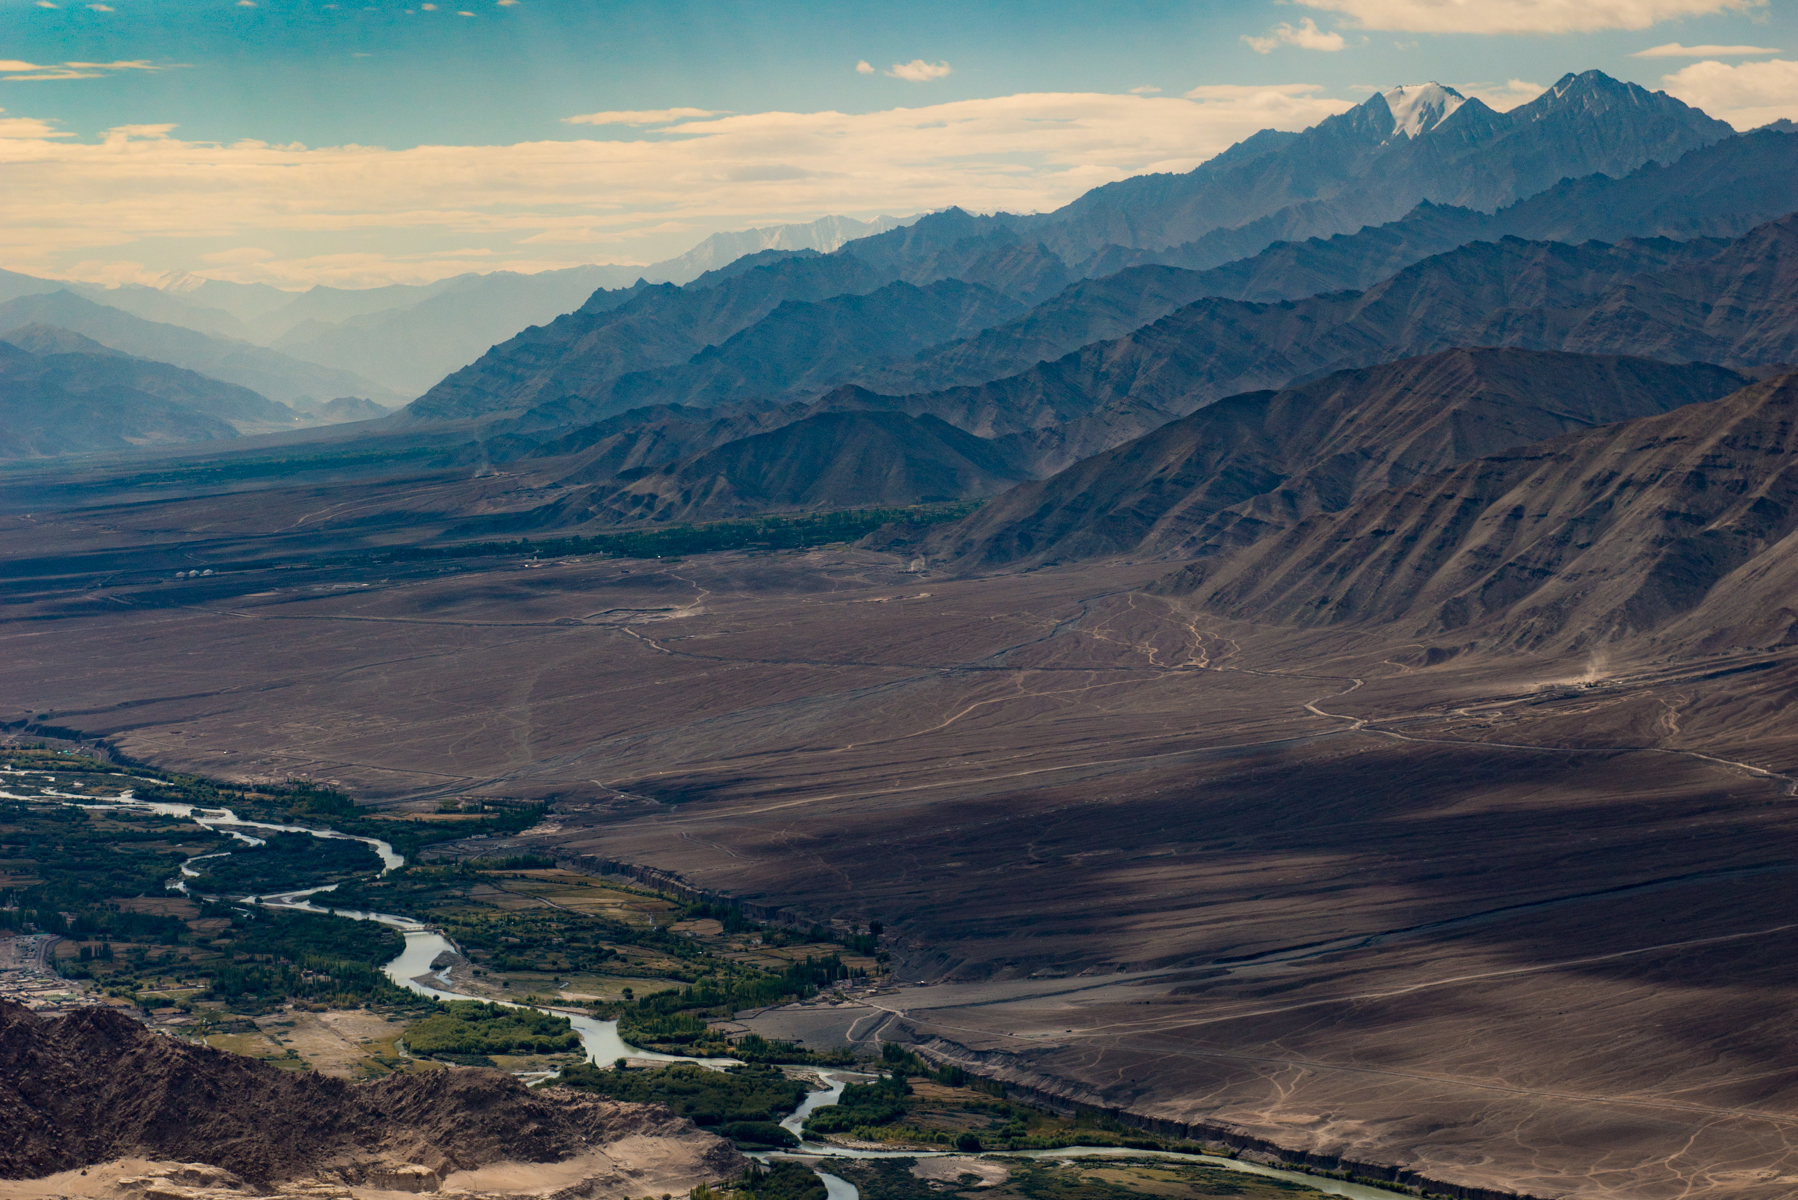 The Indus past the Stok Range, Ladakh